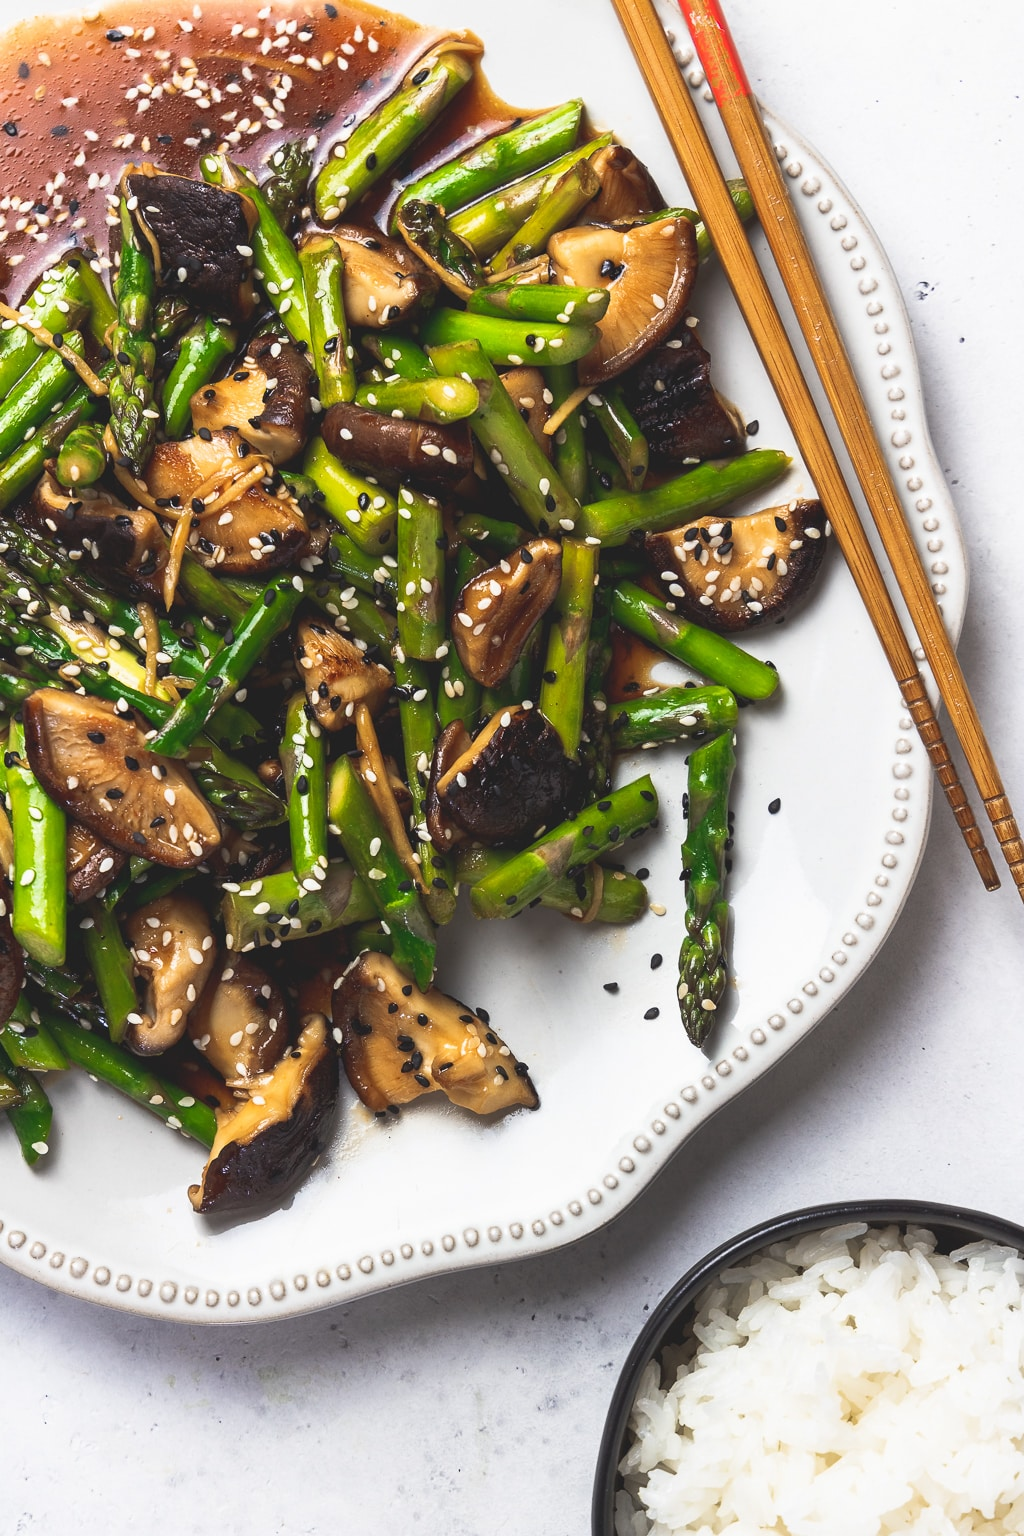 platter of asparagus mushroom stir fry with chopsticks and white rice